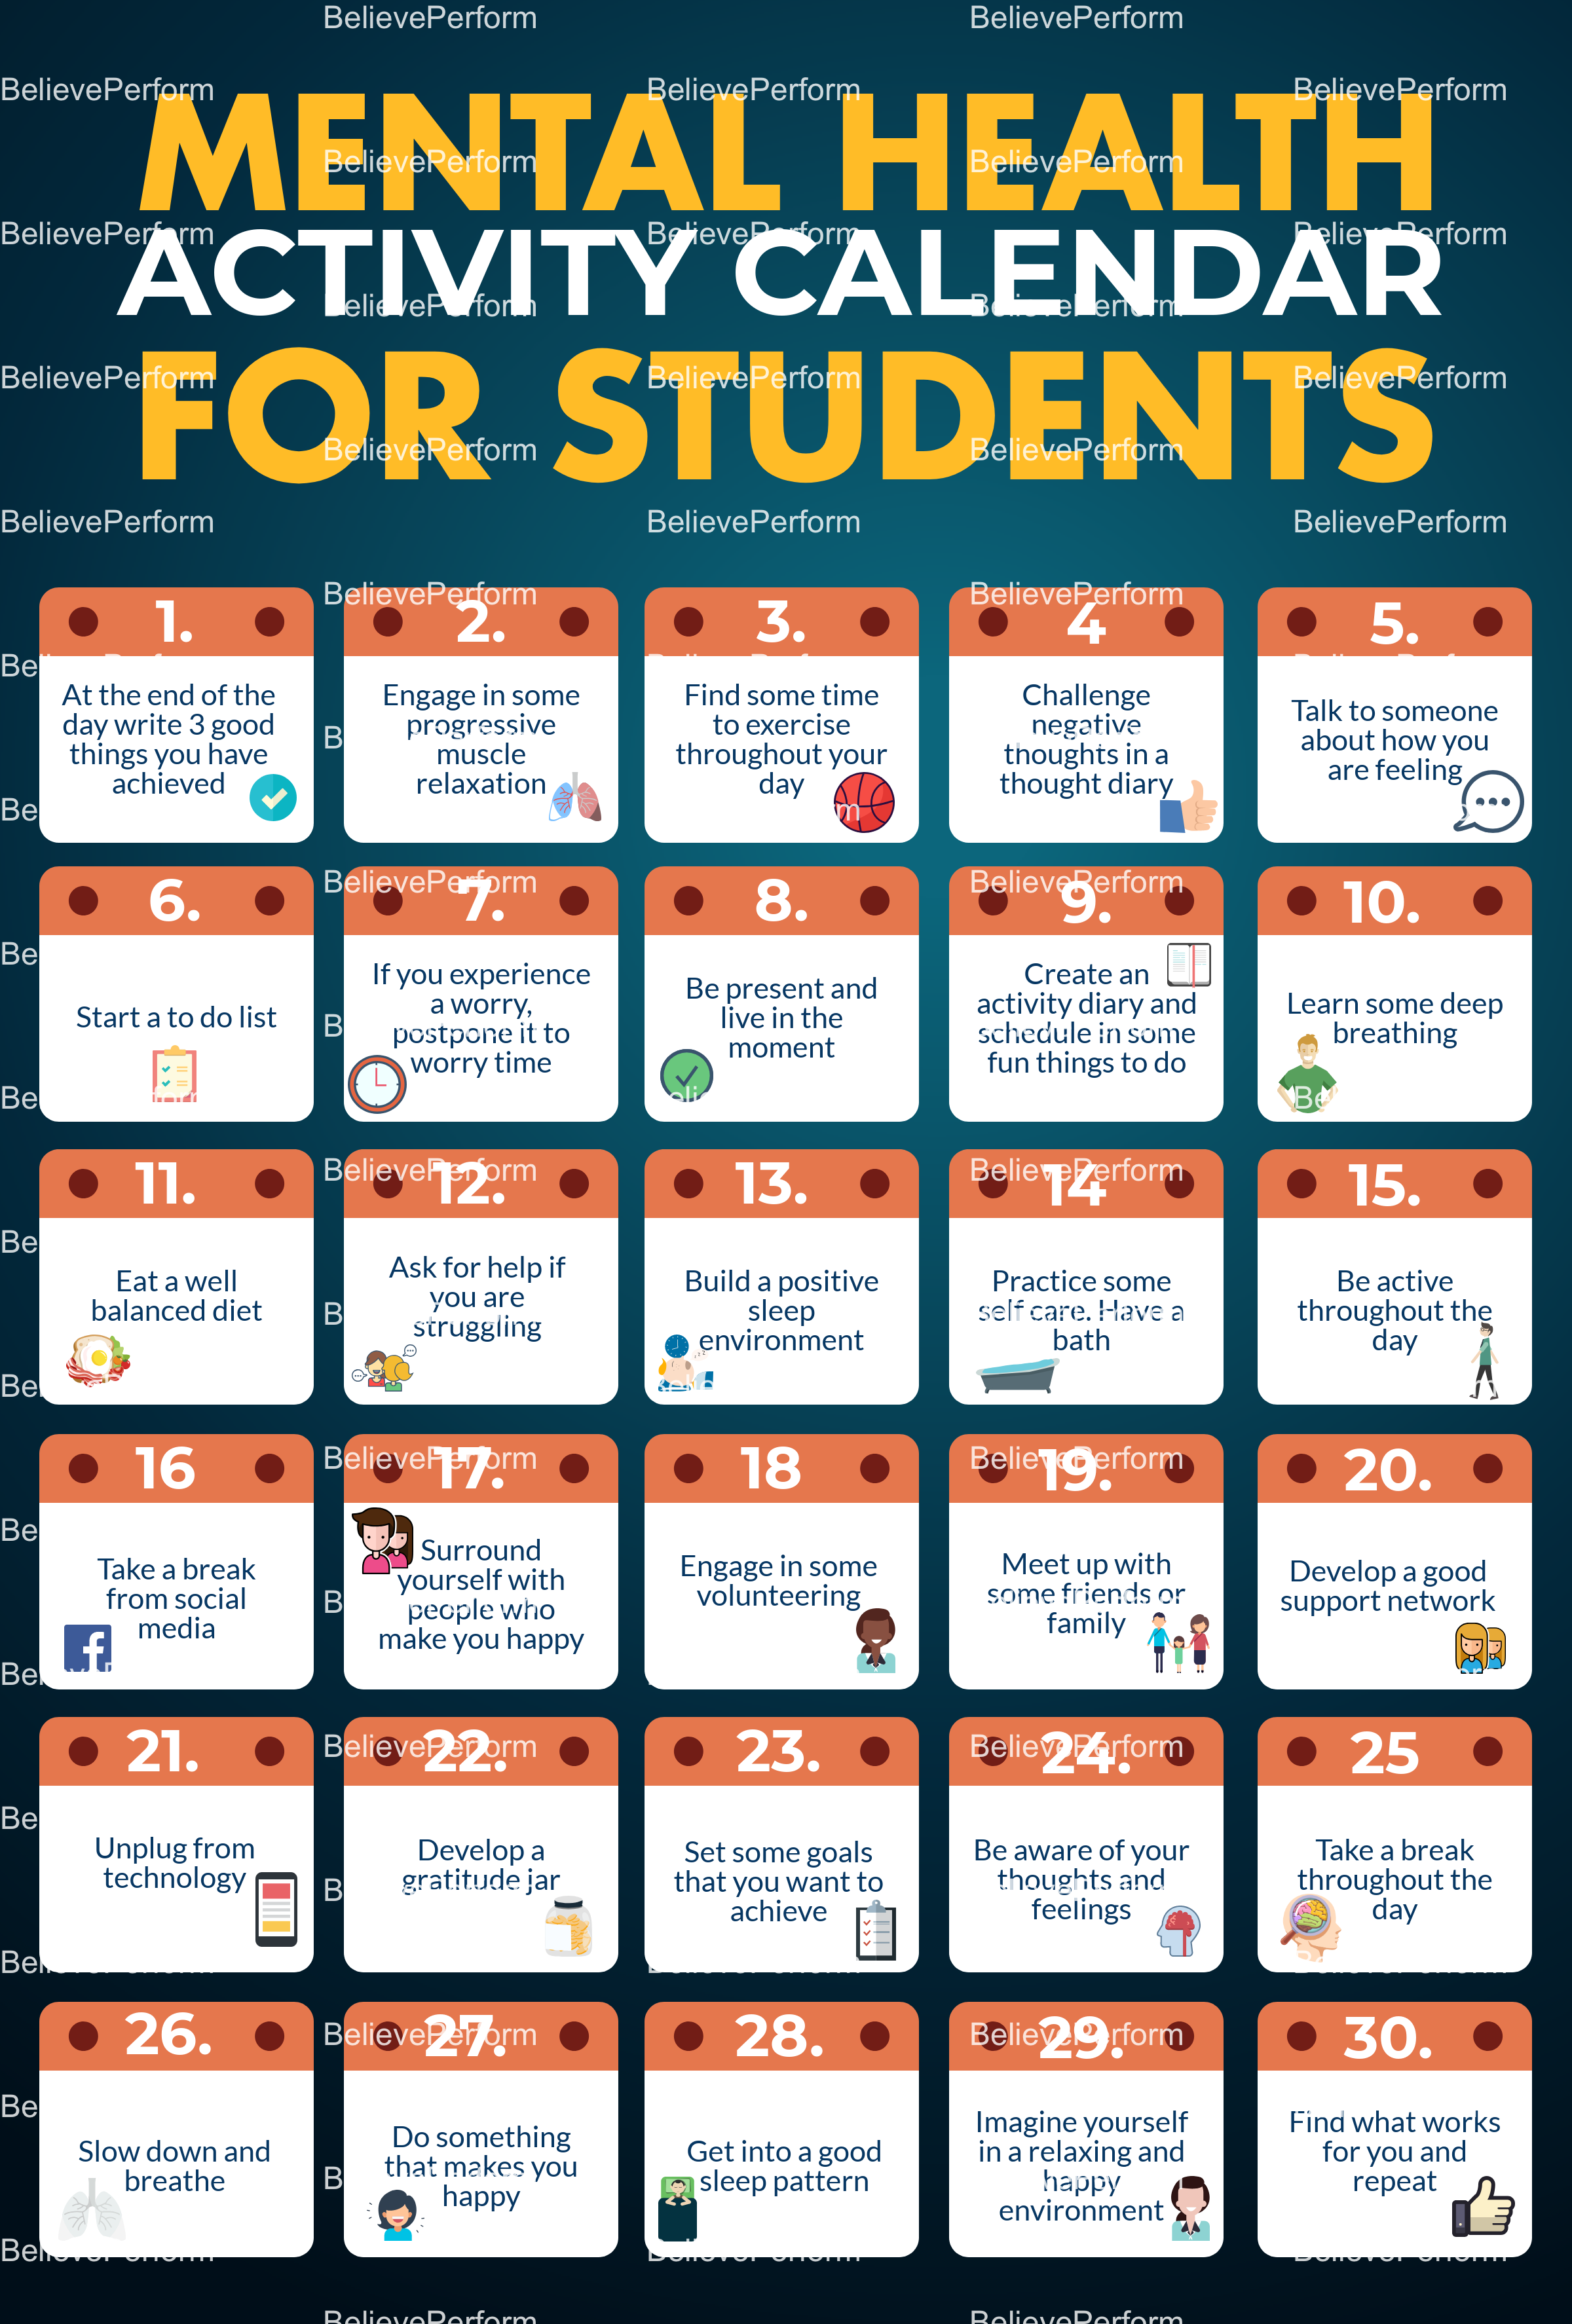 Mental health activity calendar for students